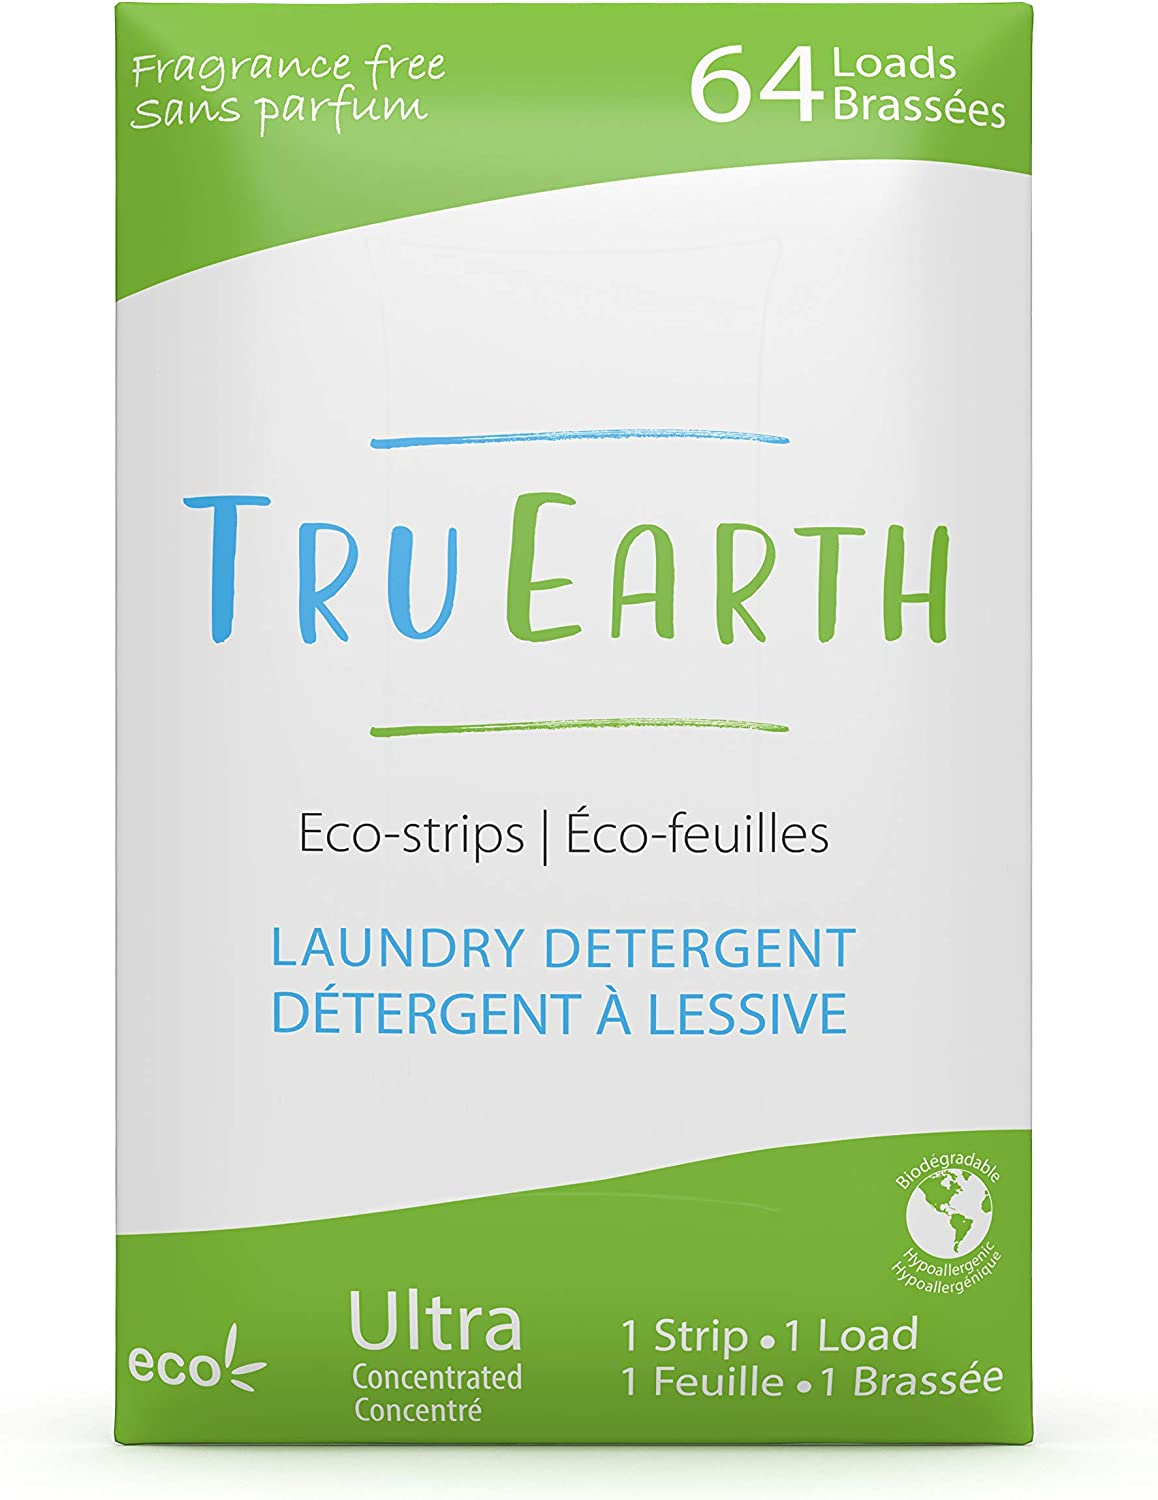 Tru Earth Eco-Strips Laundry Detergent (Fragrance-Free, 64 Loads) - Eco-Friendly Ultra Concentrated Hypoallergenic Compostable & Biodegradable Plastic-Free Laundry Detergent Sheets